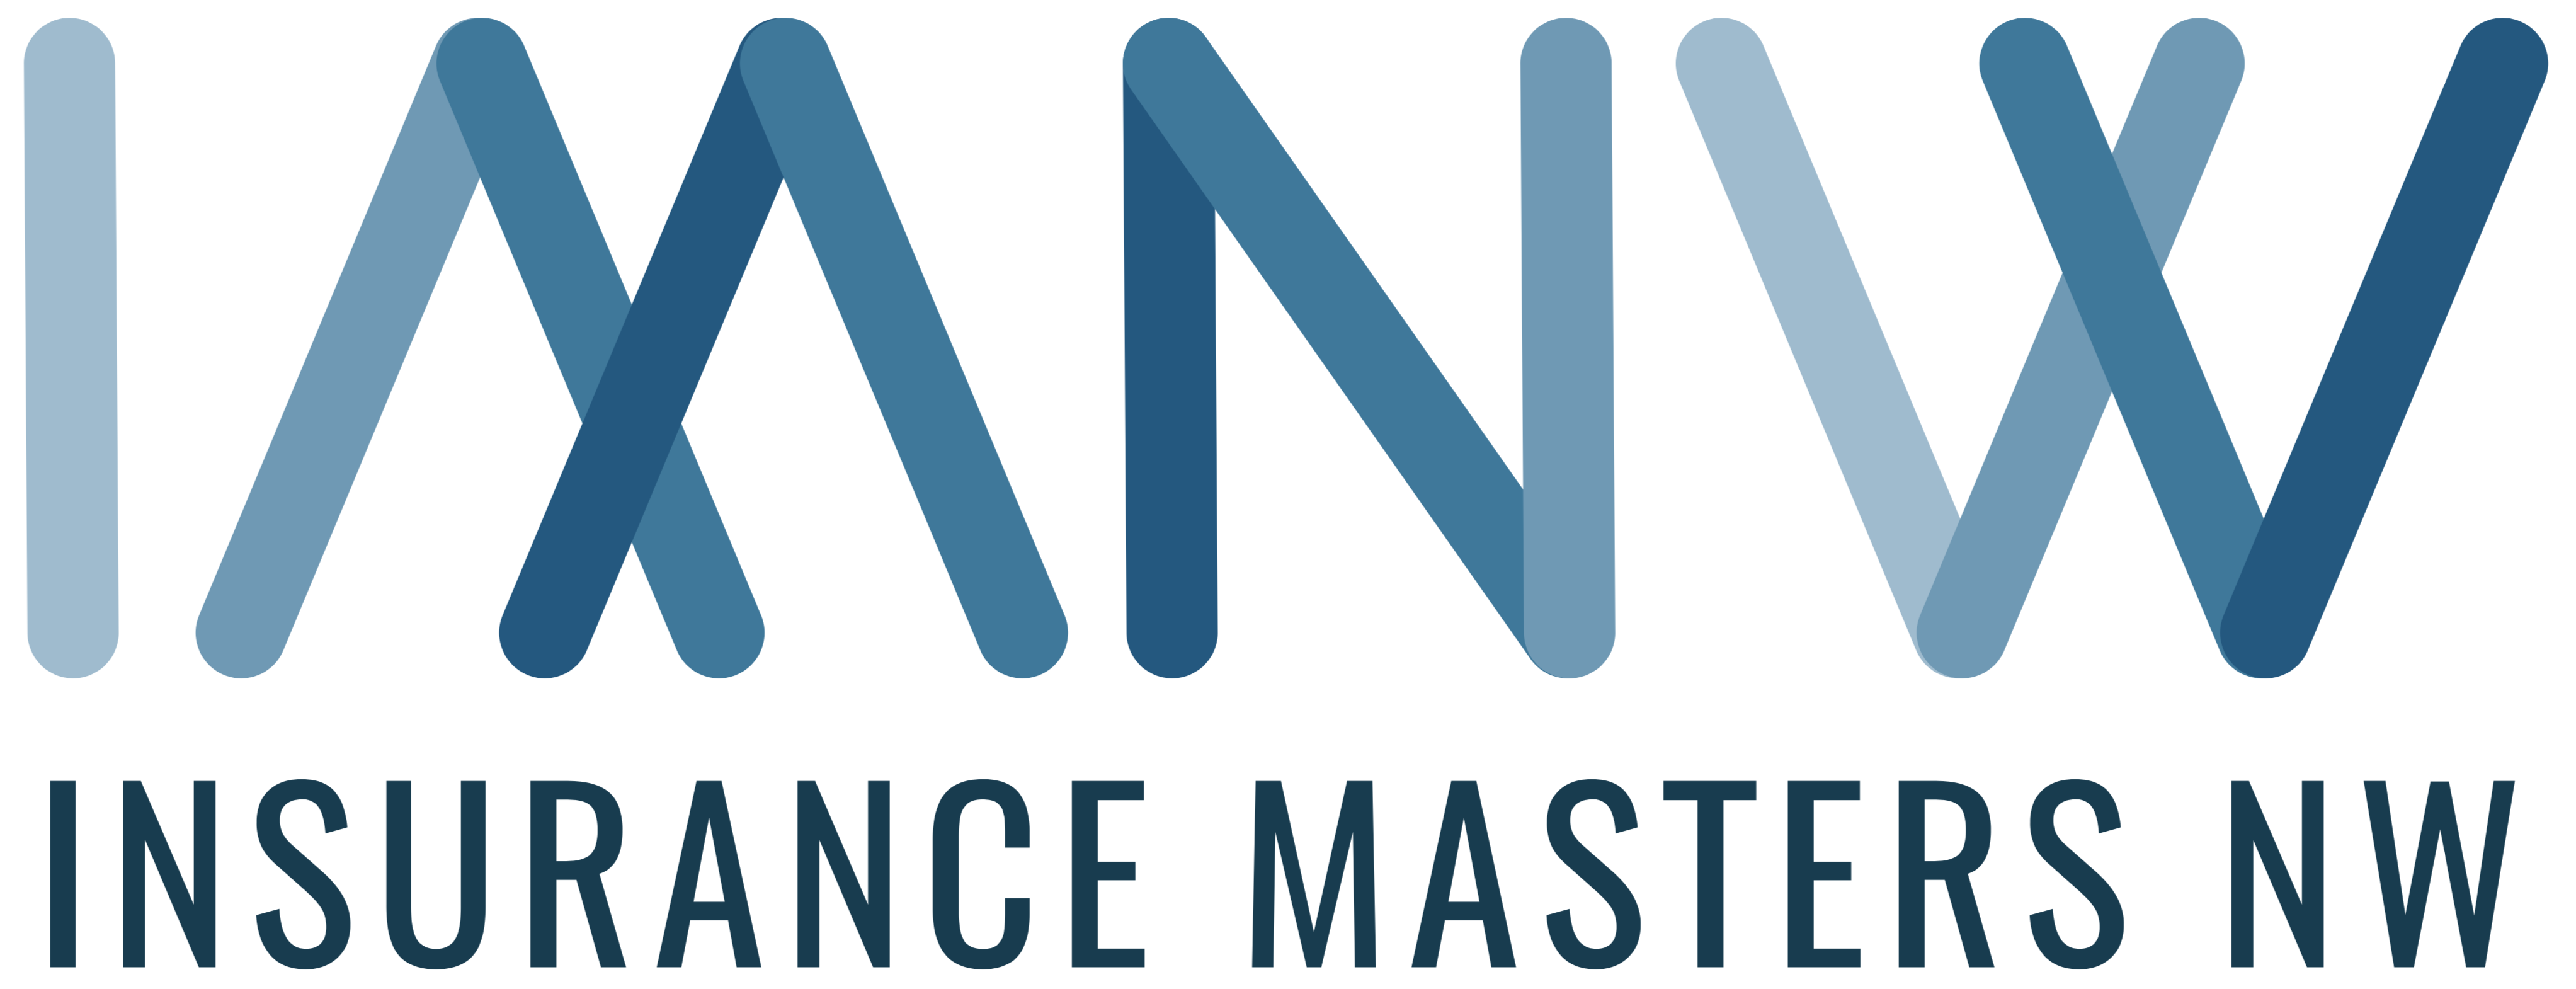 Logo for Insurance Masters NW